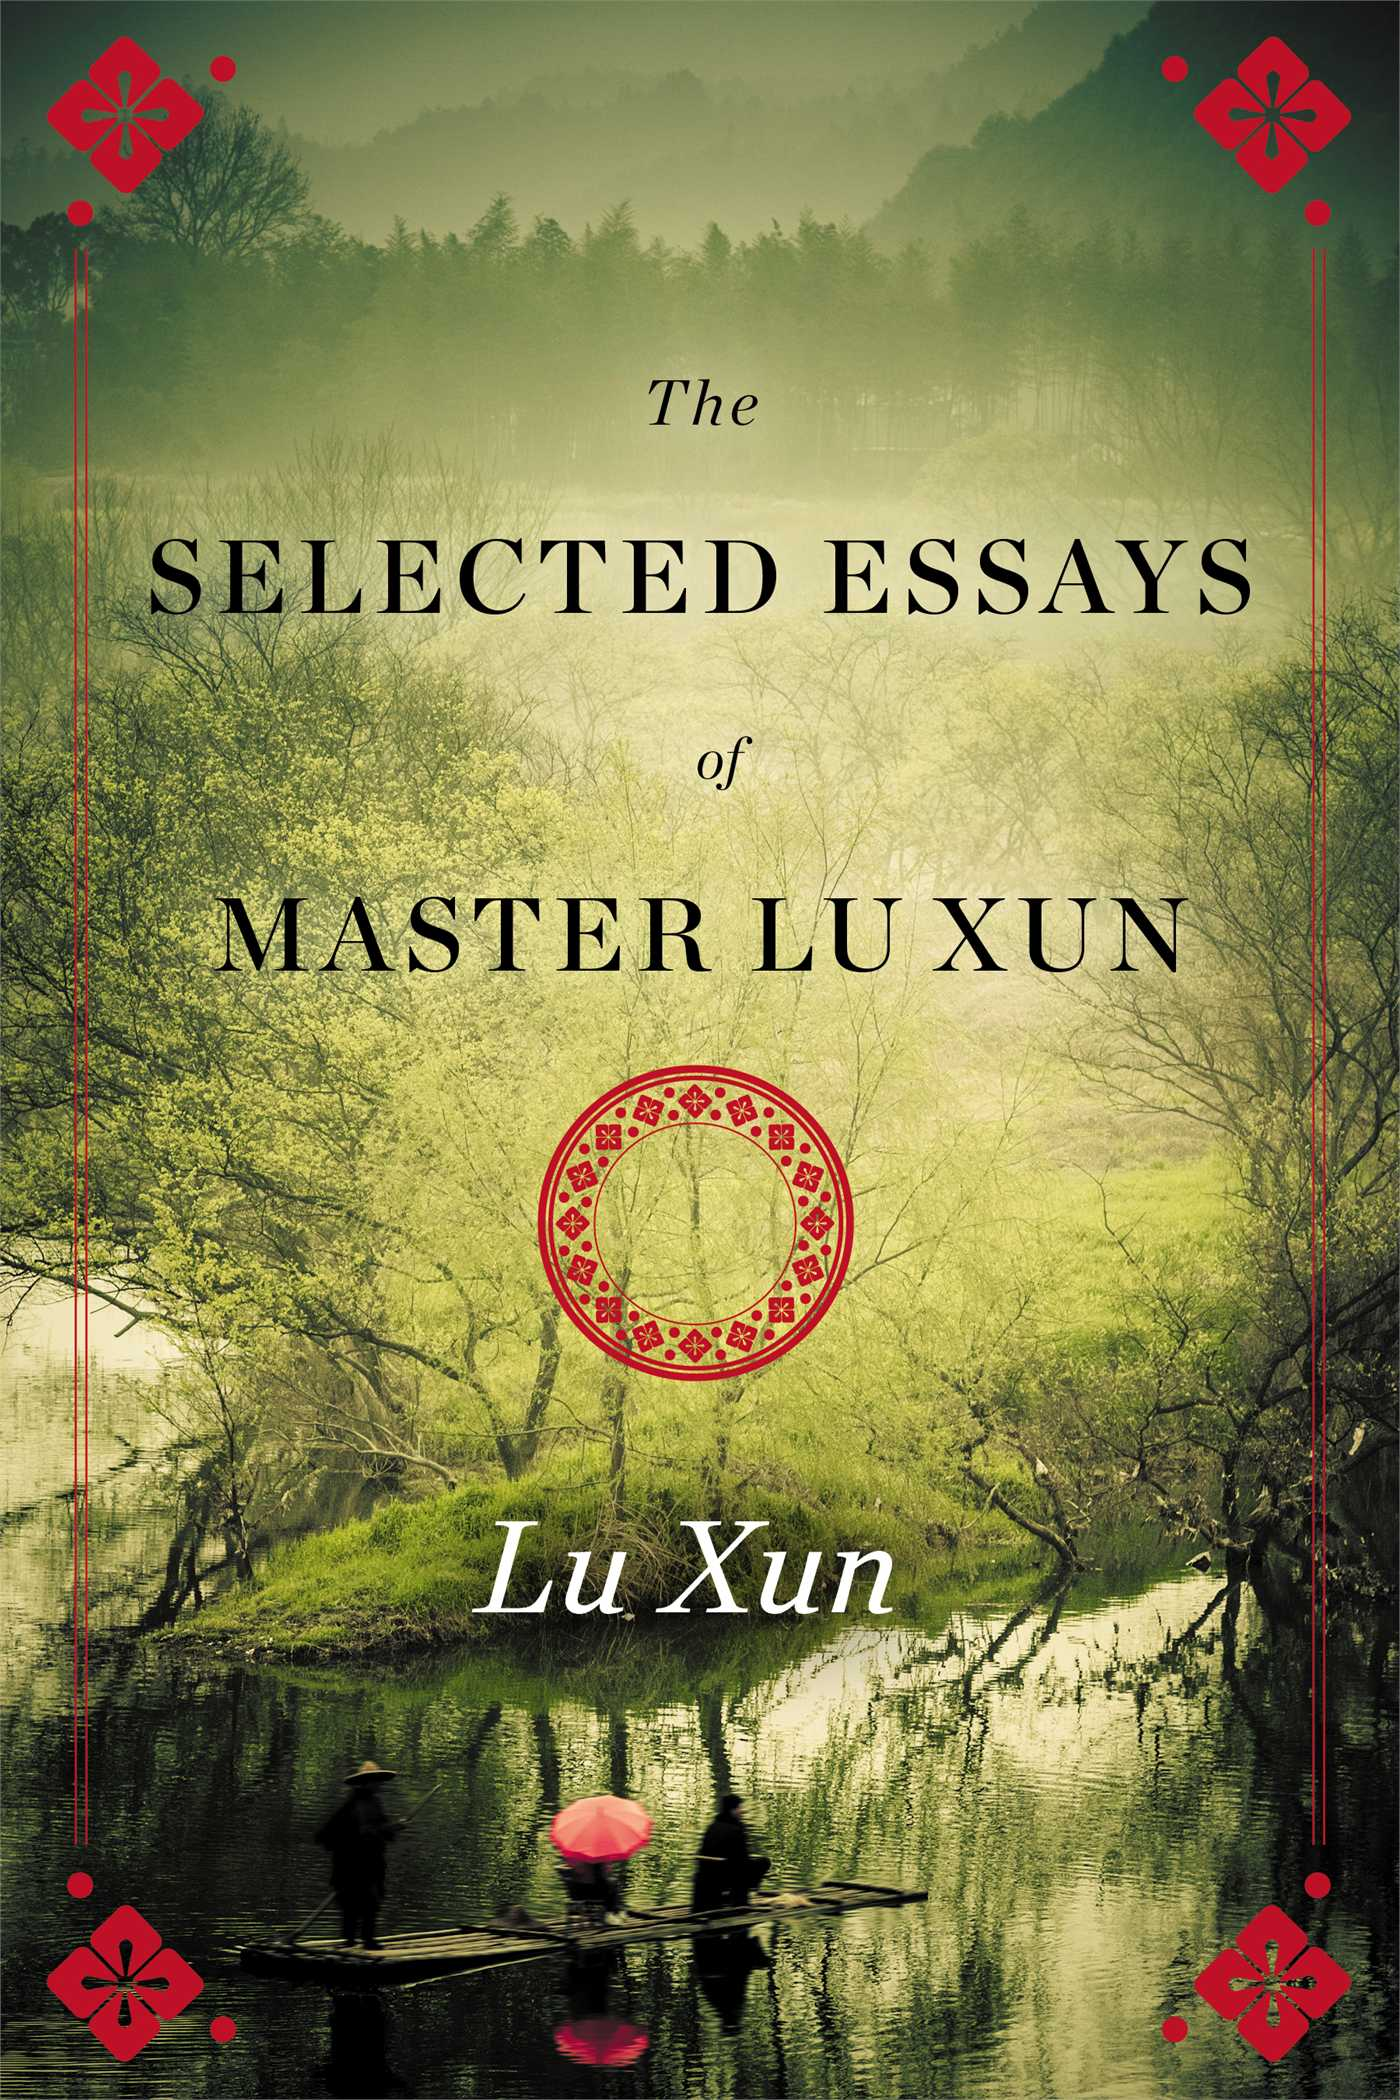 Selected-essays-of-master-lu-xun-9781476774930_hr